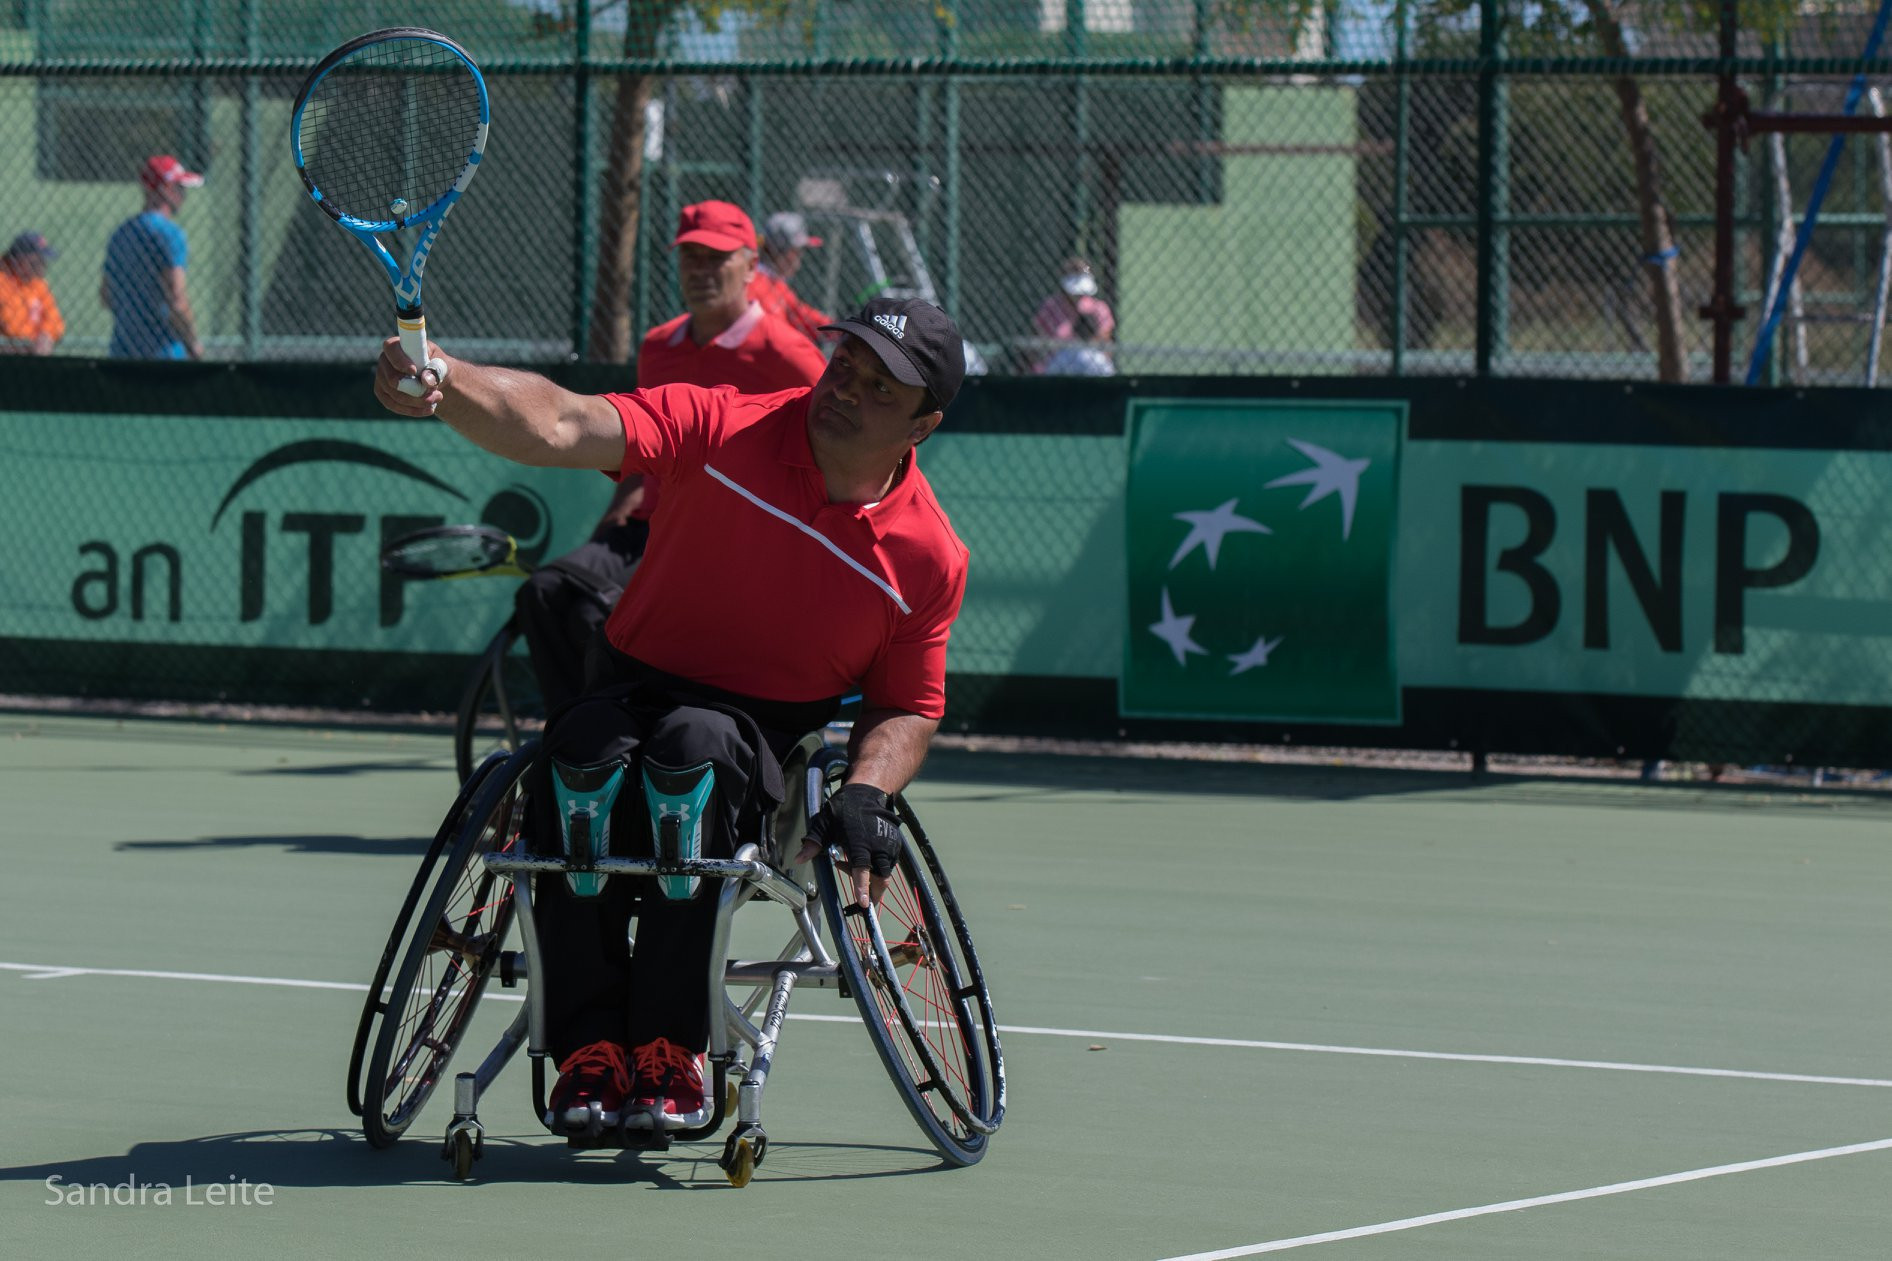 Semi-final line-up confirmed at ITF World Team Cup European qualifier